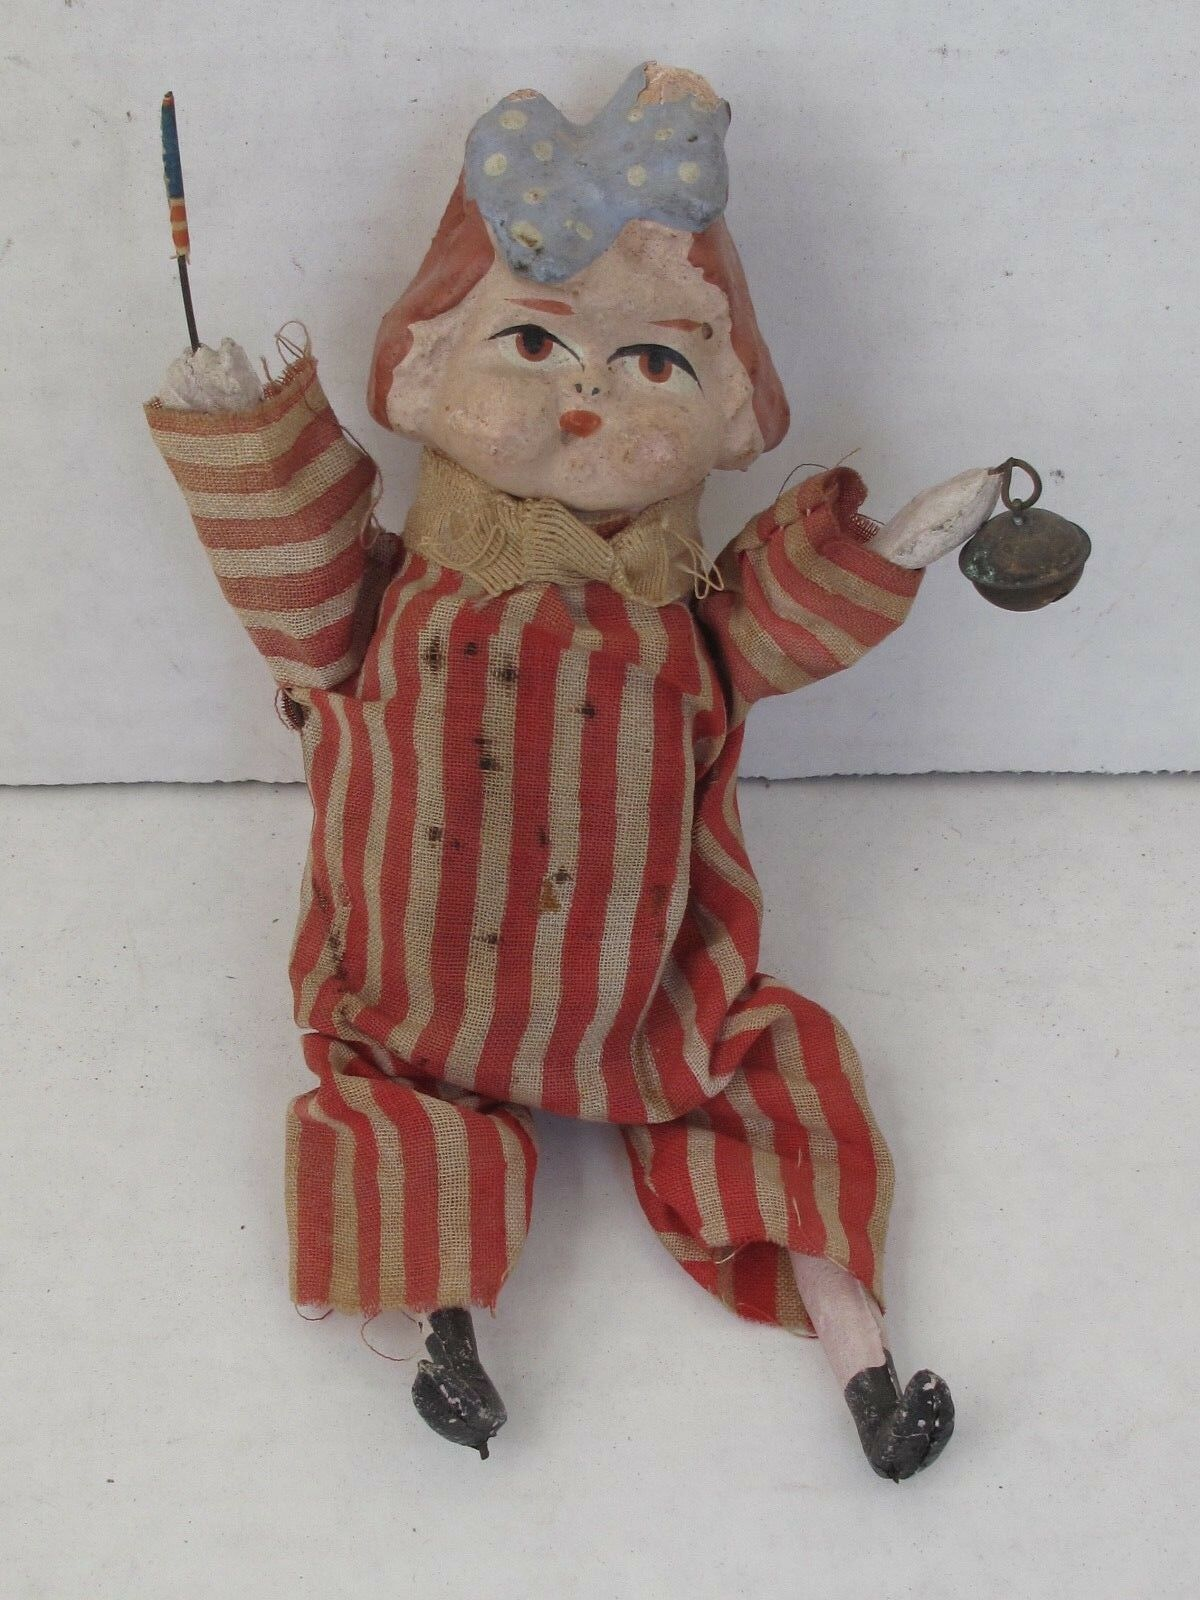 Antique 4th of July Girl Composition and Cloth Squeak Toy